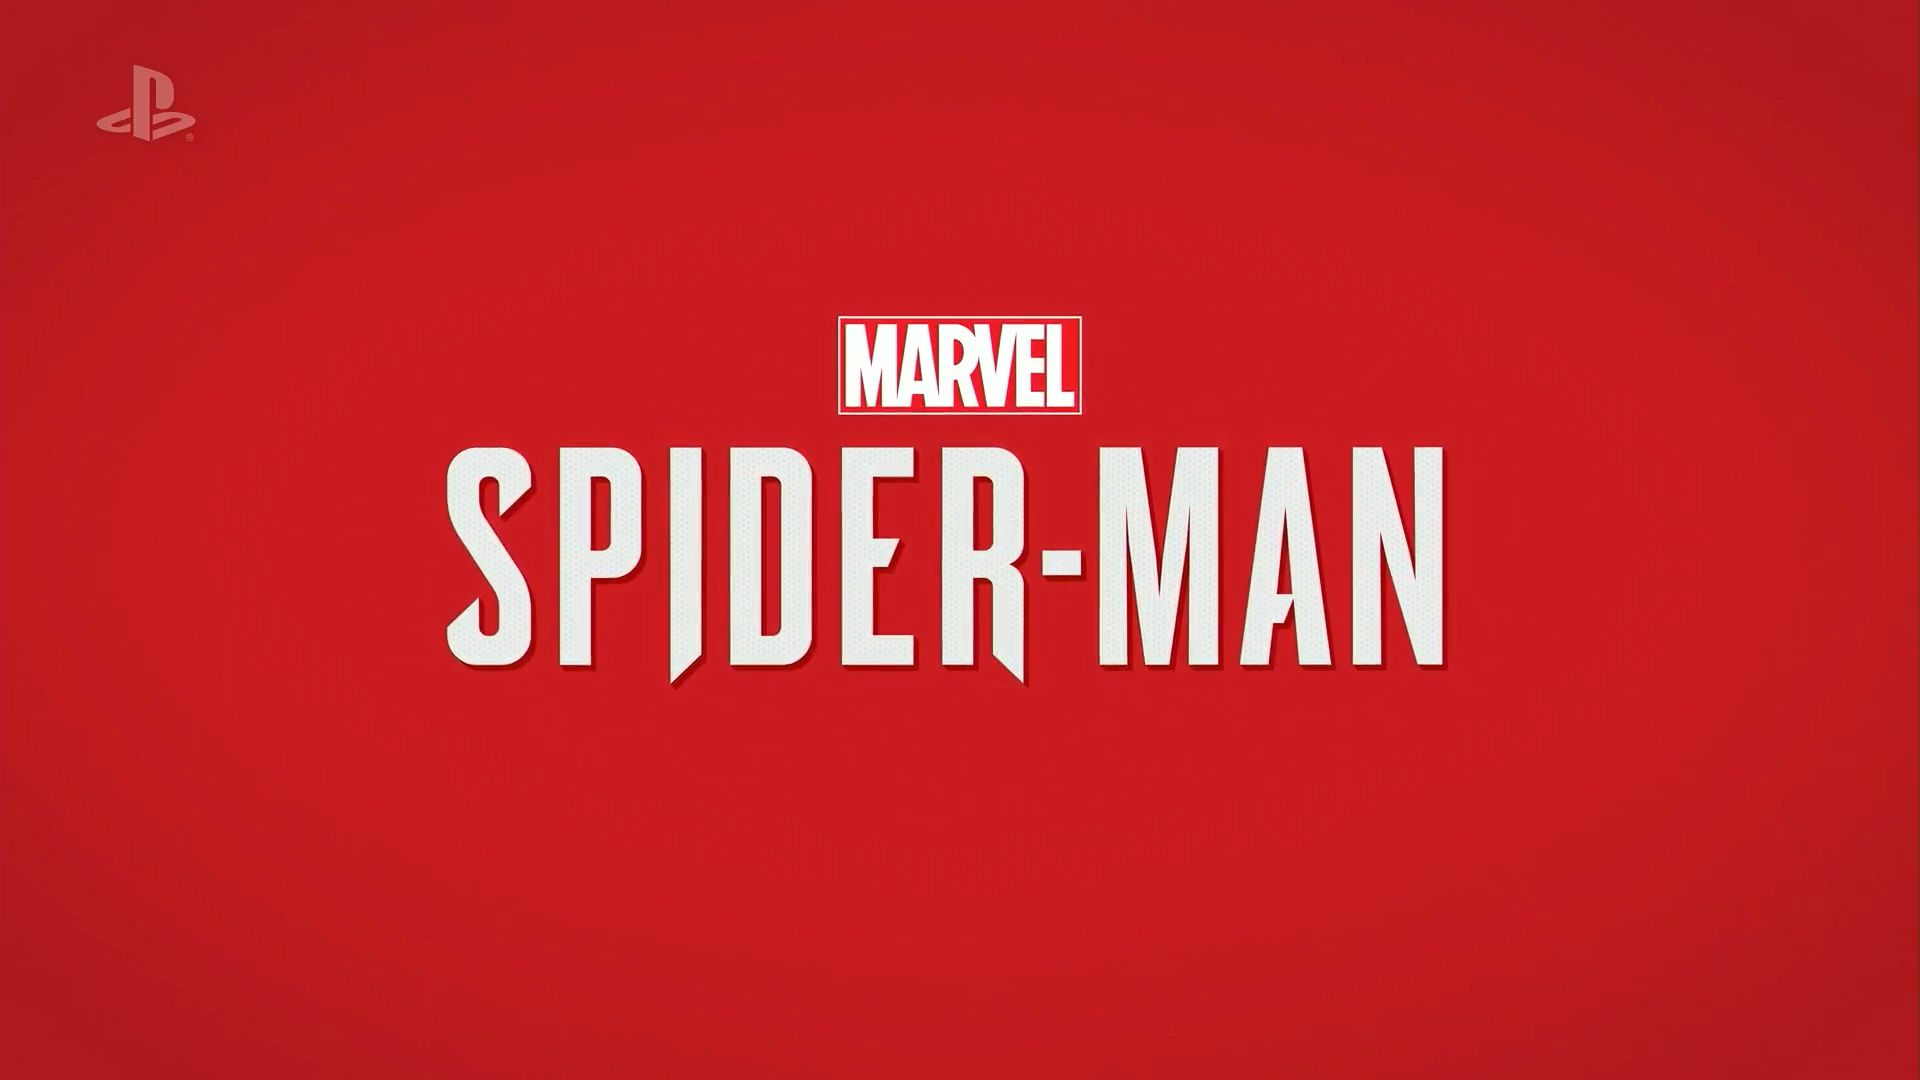 Spider-Man Windows font - free for Personal